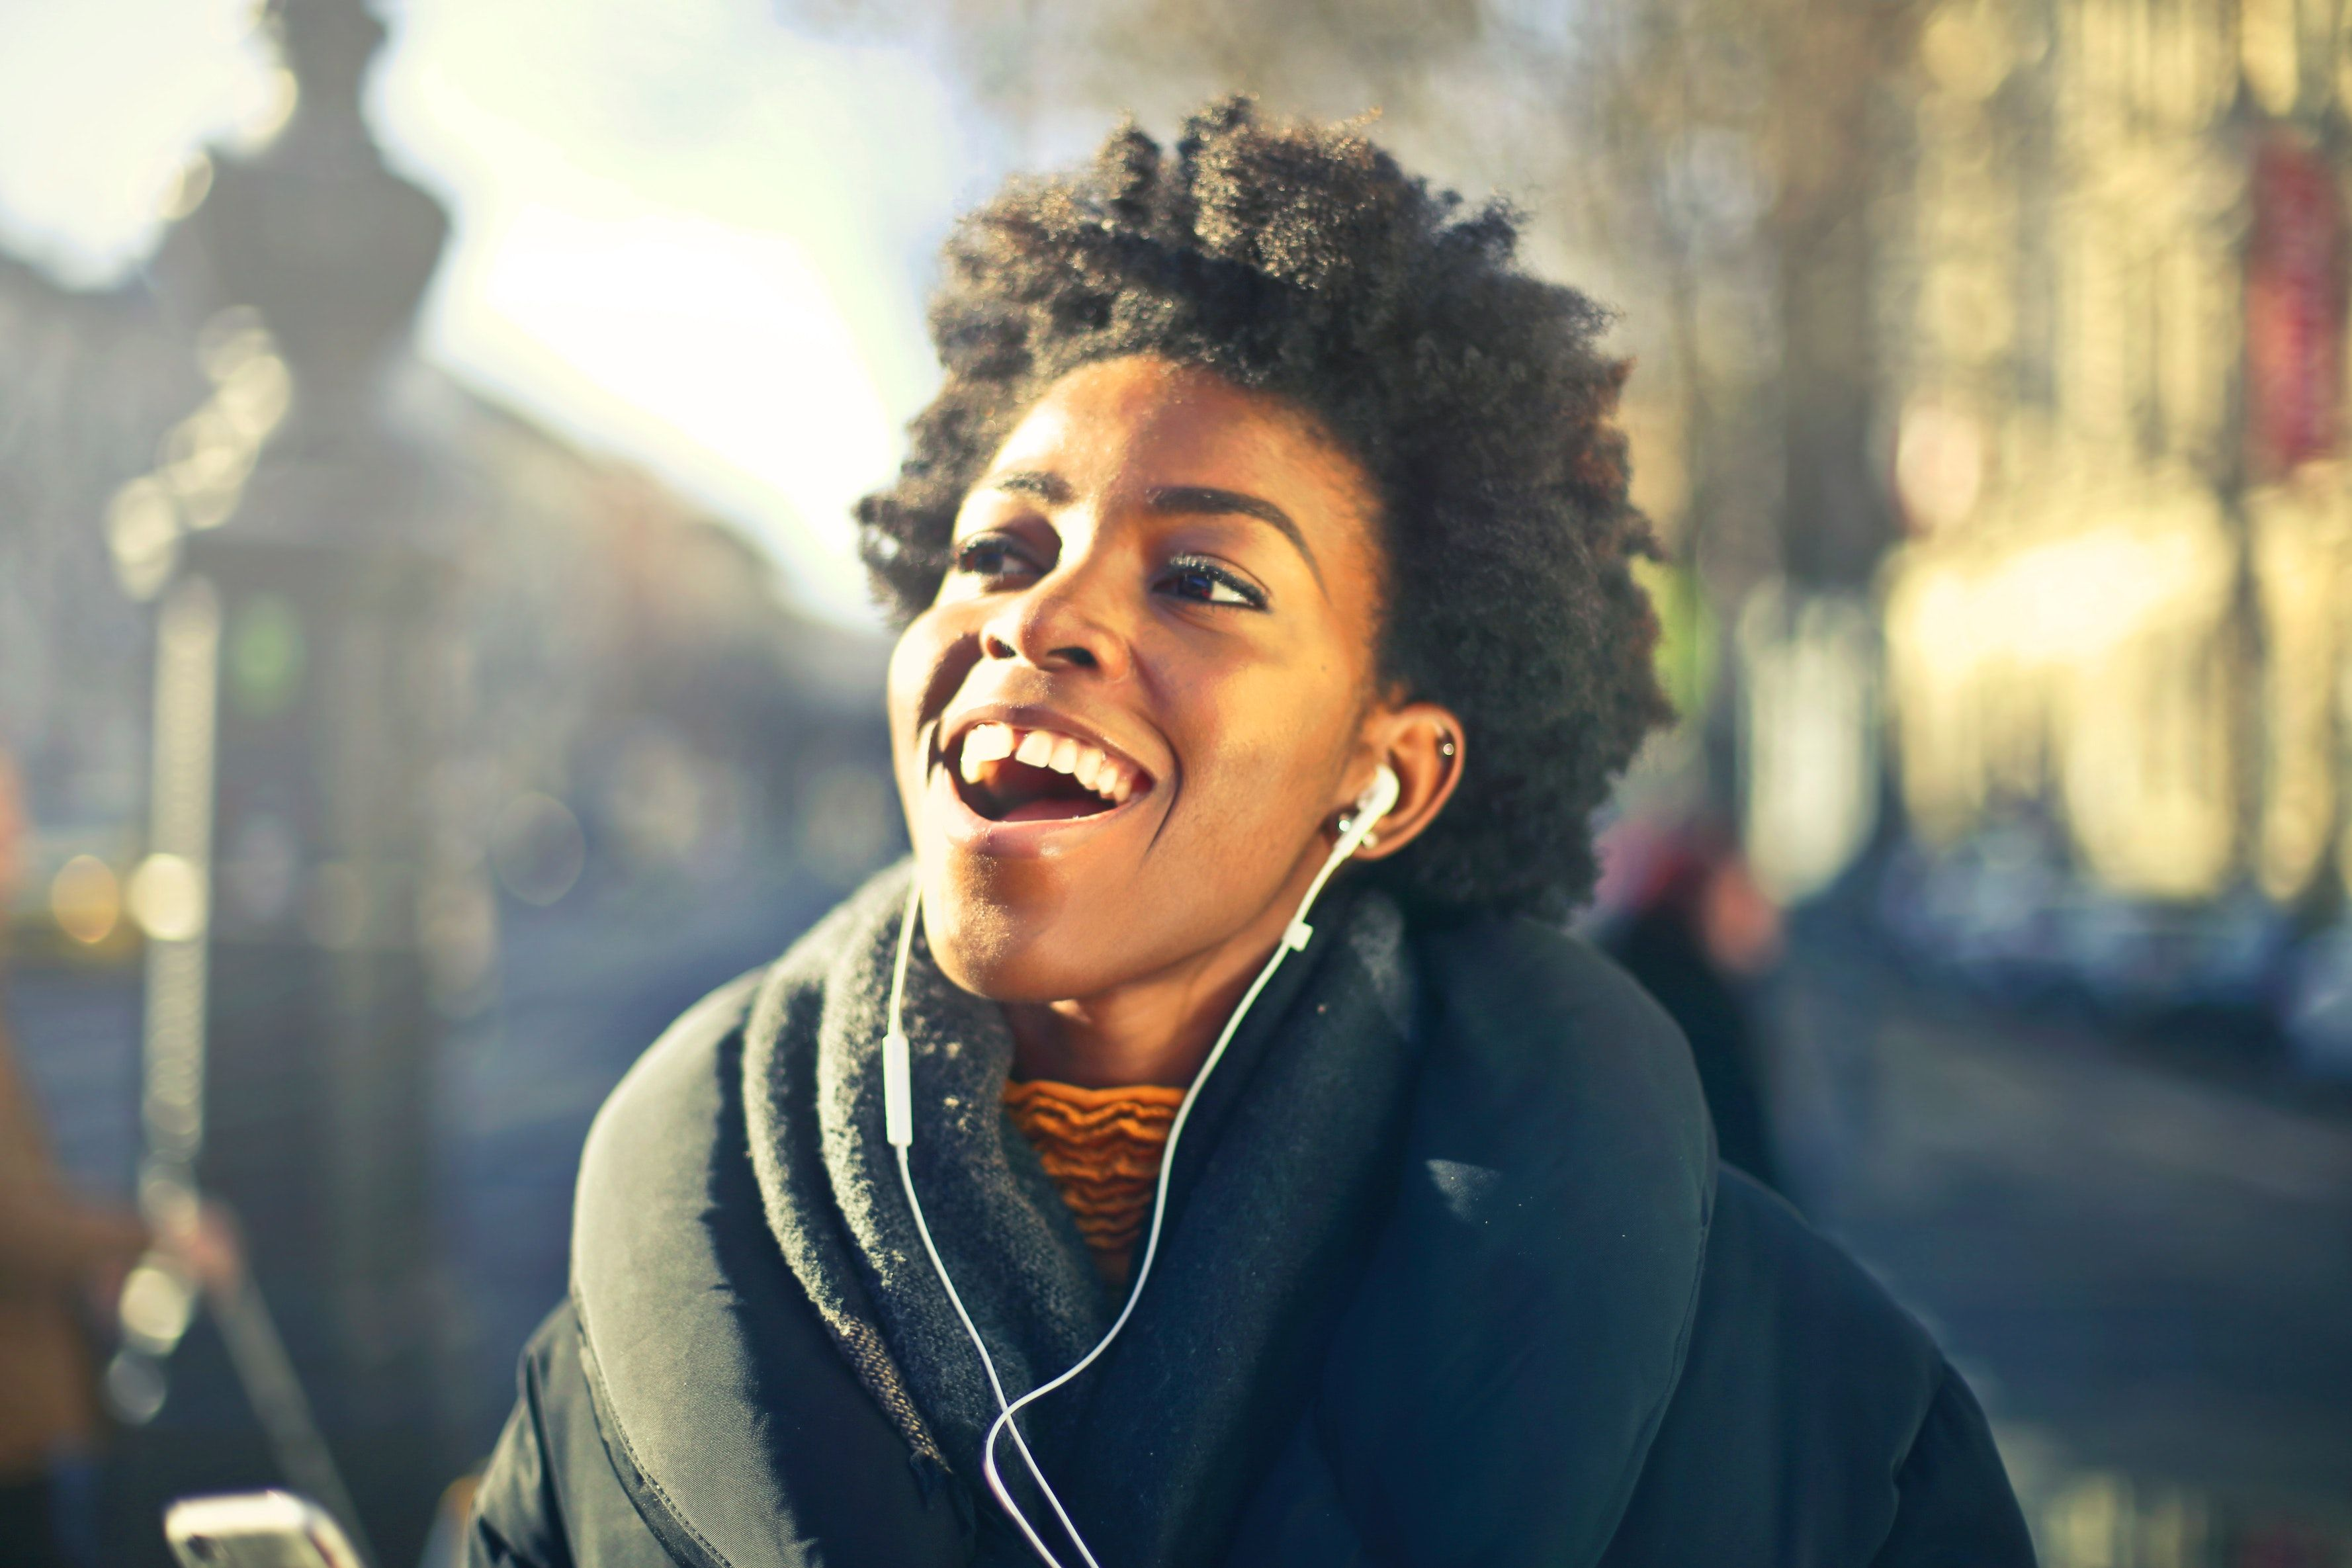 3 ways singing is good for your health